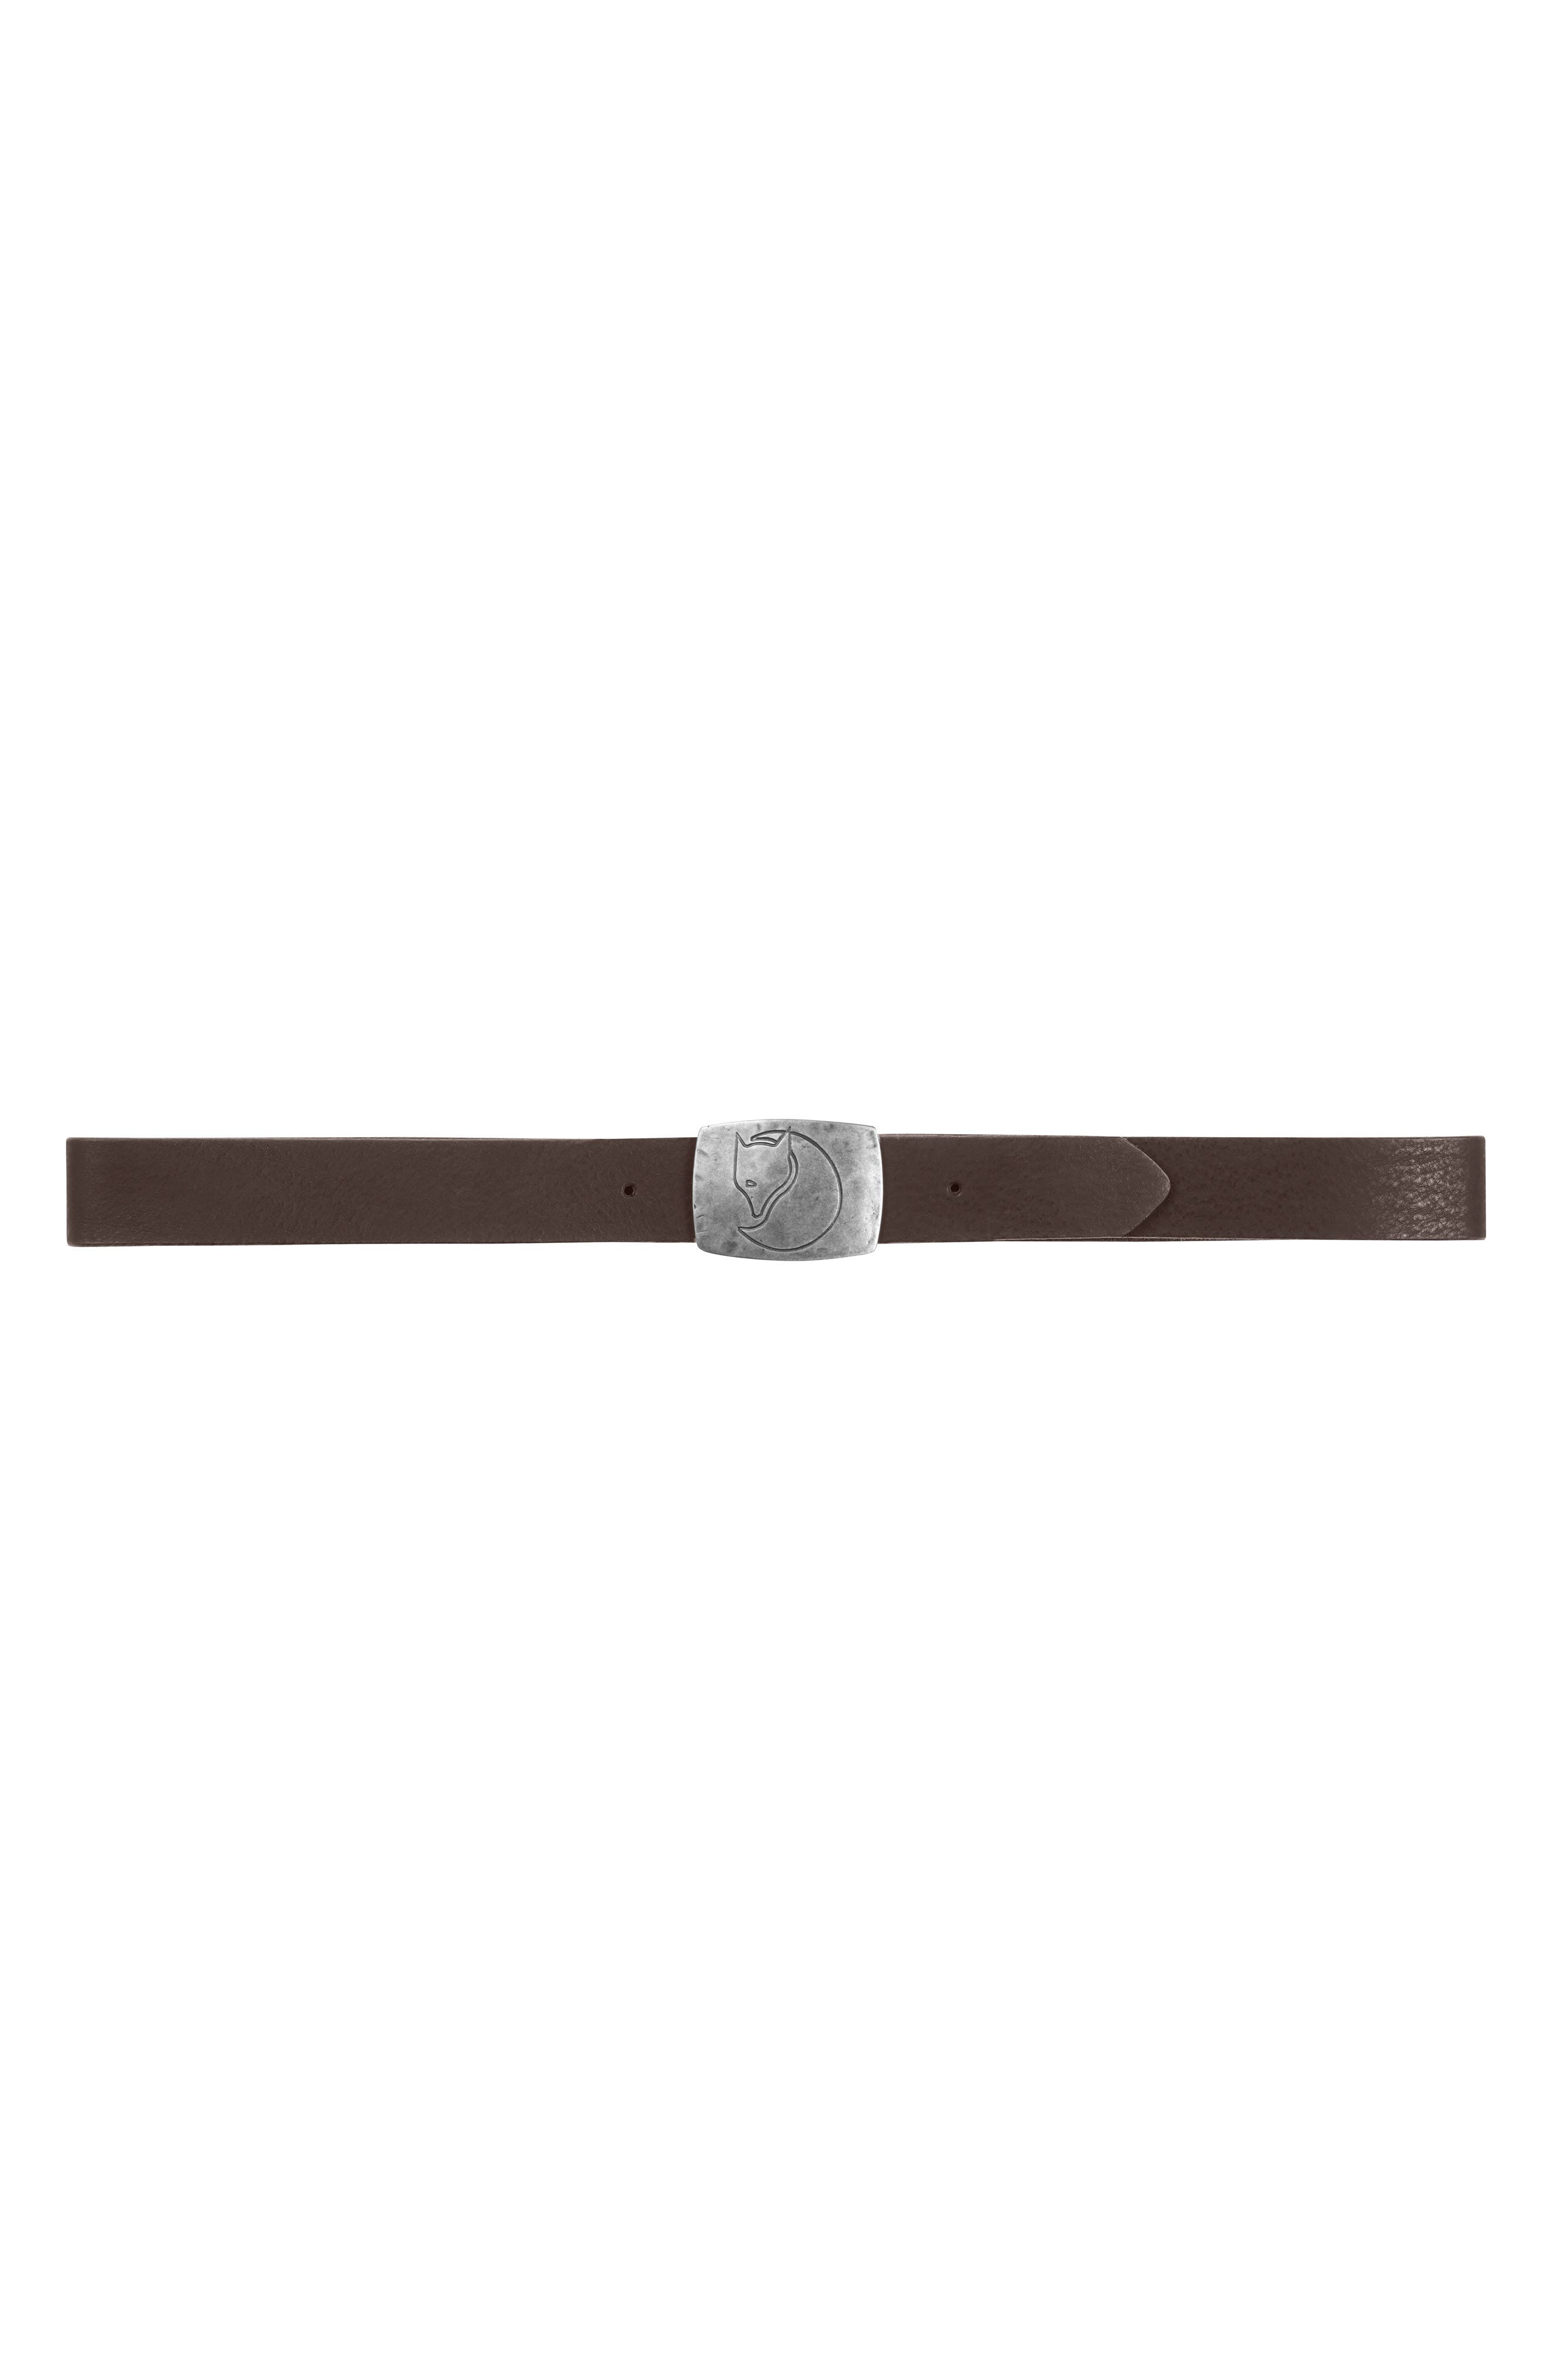 Murena Leather Belt,                             Alternate thumbnail 2, color,                             Leather Brown